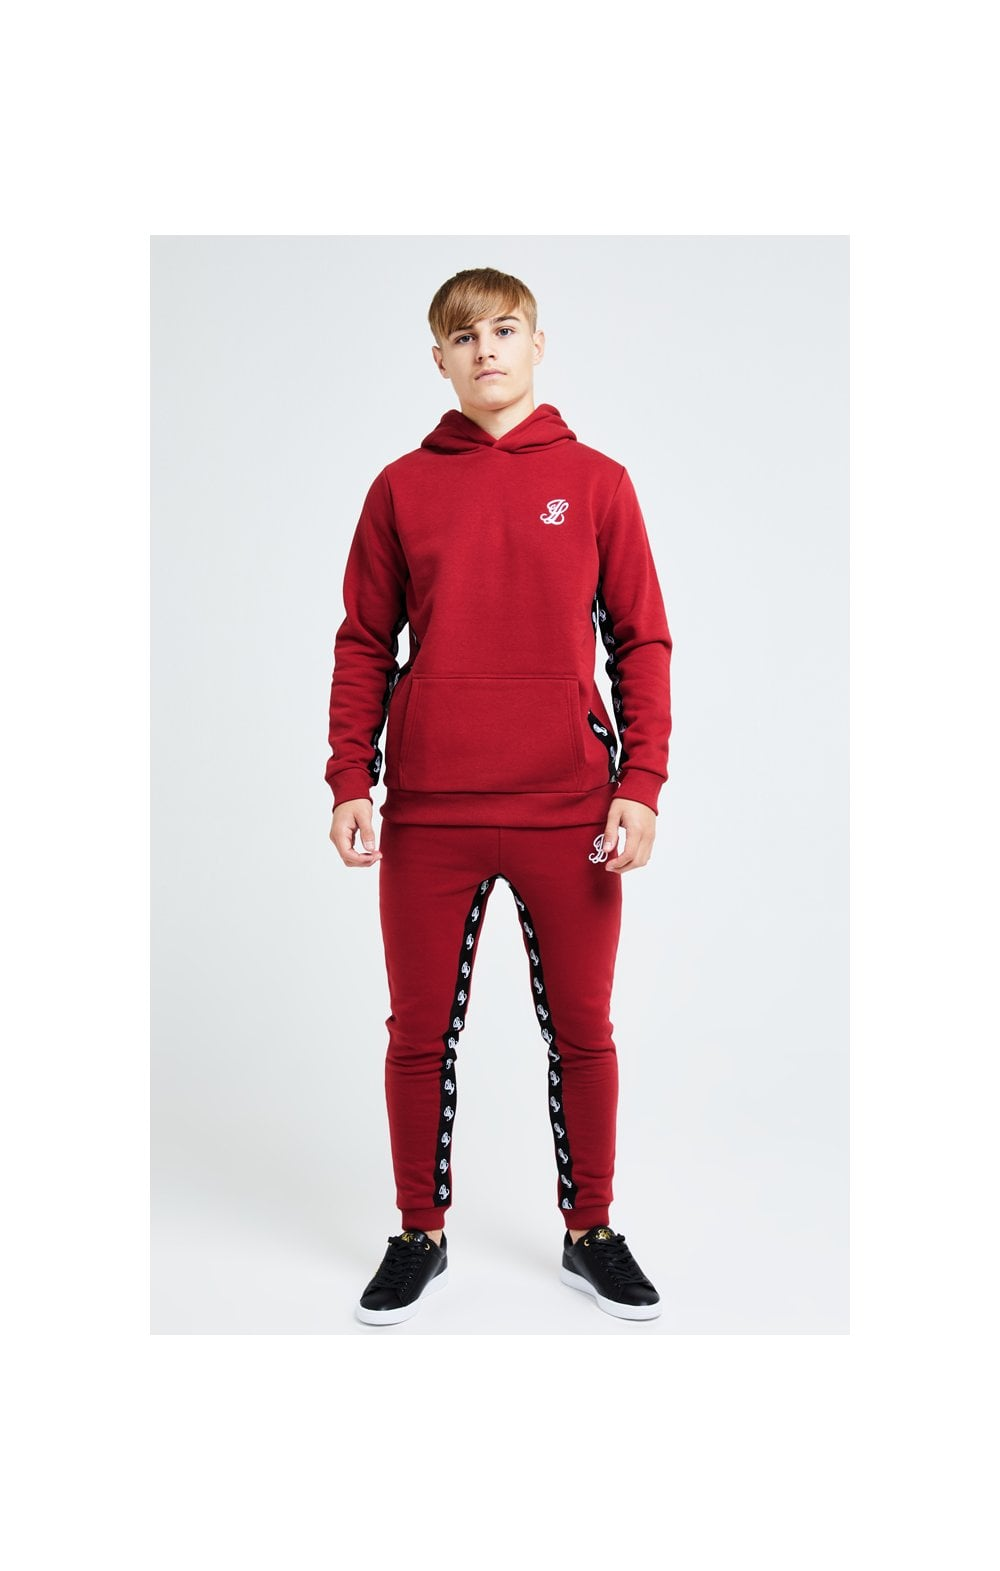 Illusive London Gravity Overhead Hoodie - Red (4)